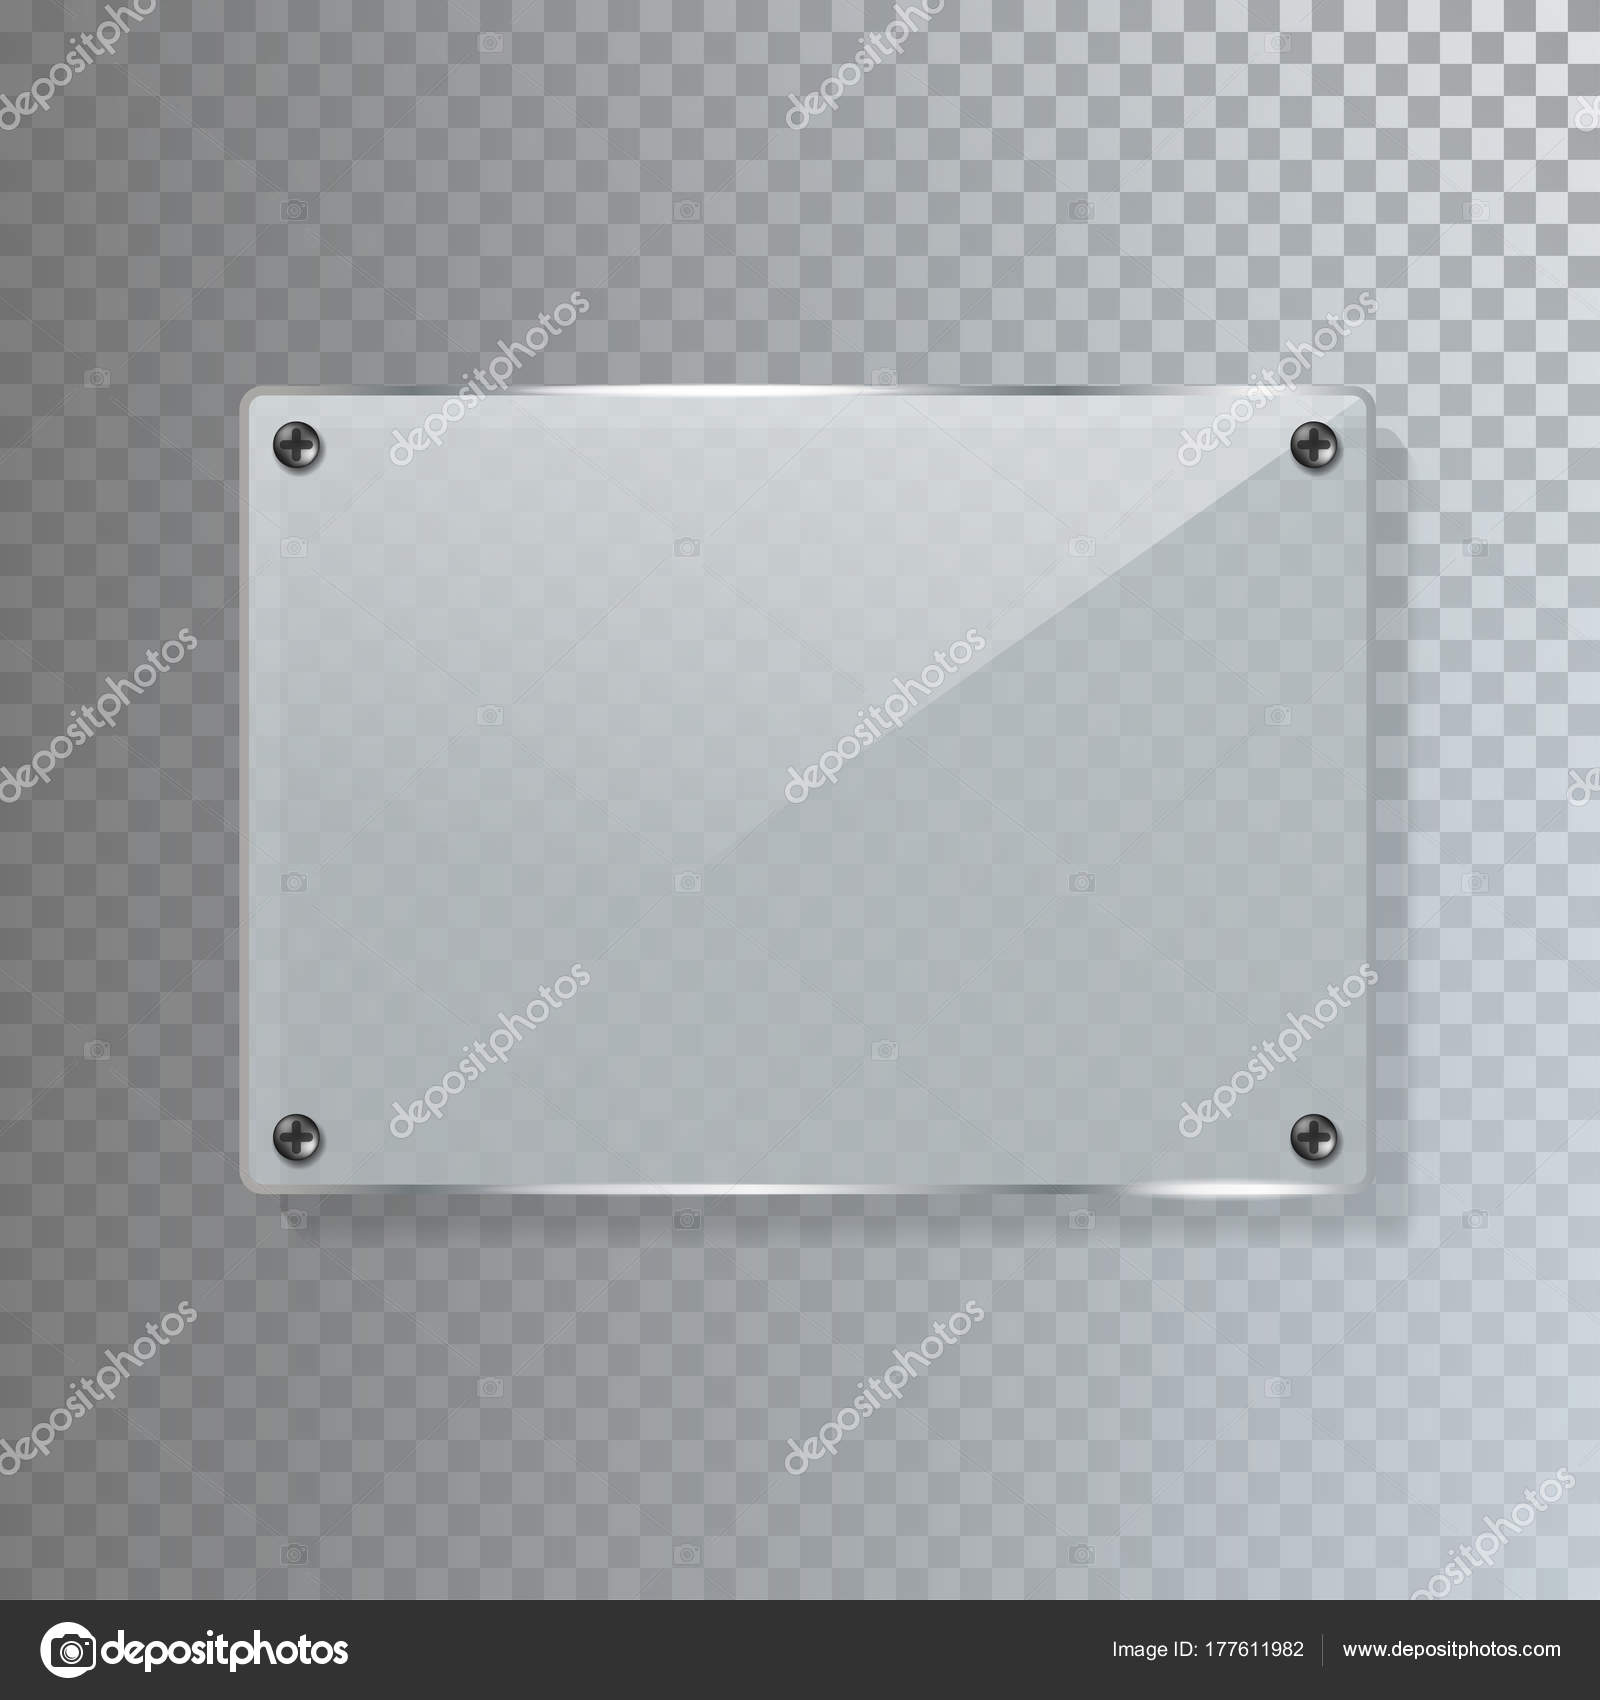 realistic transparent glass banner template vector illustration